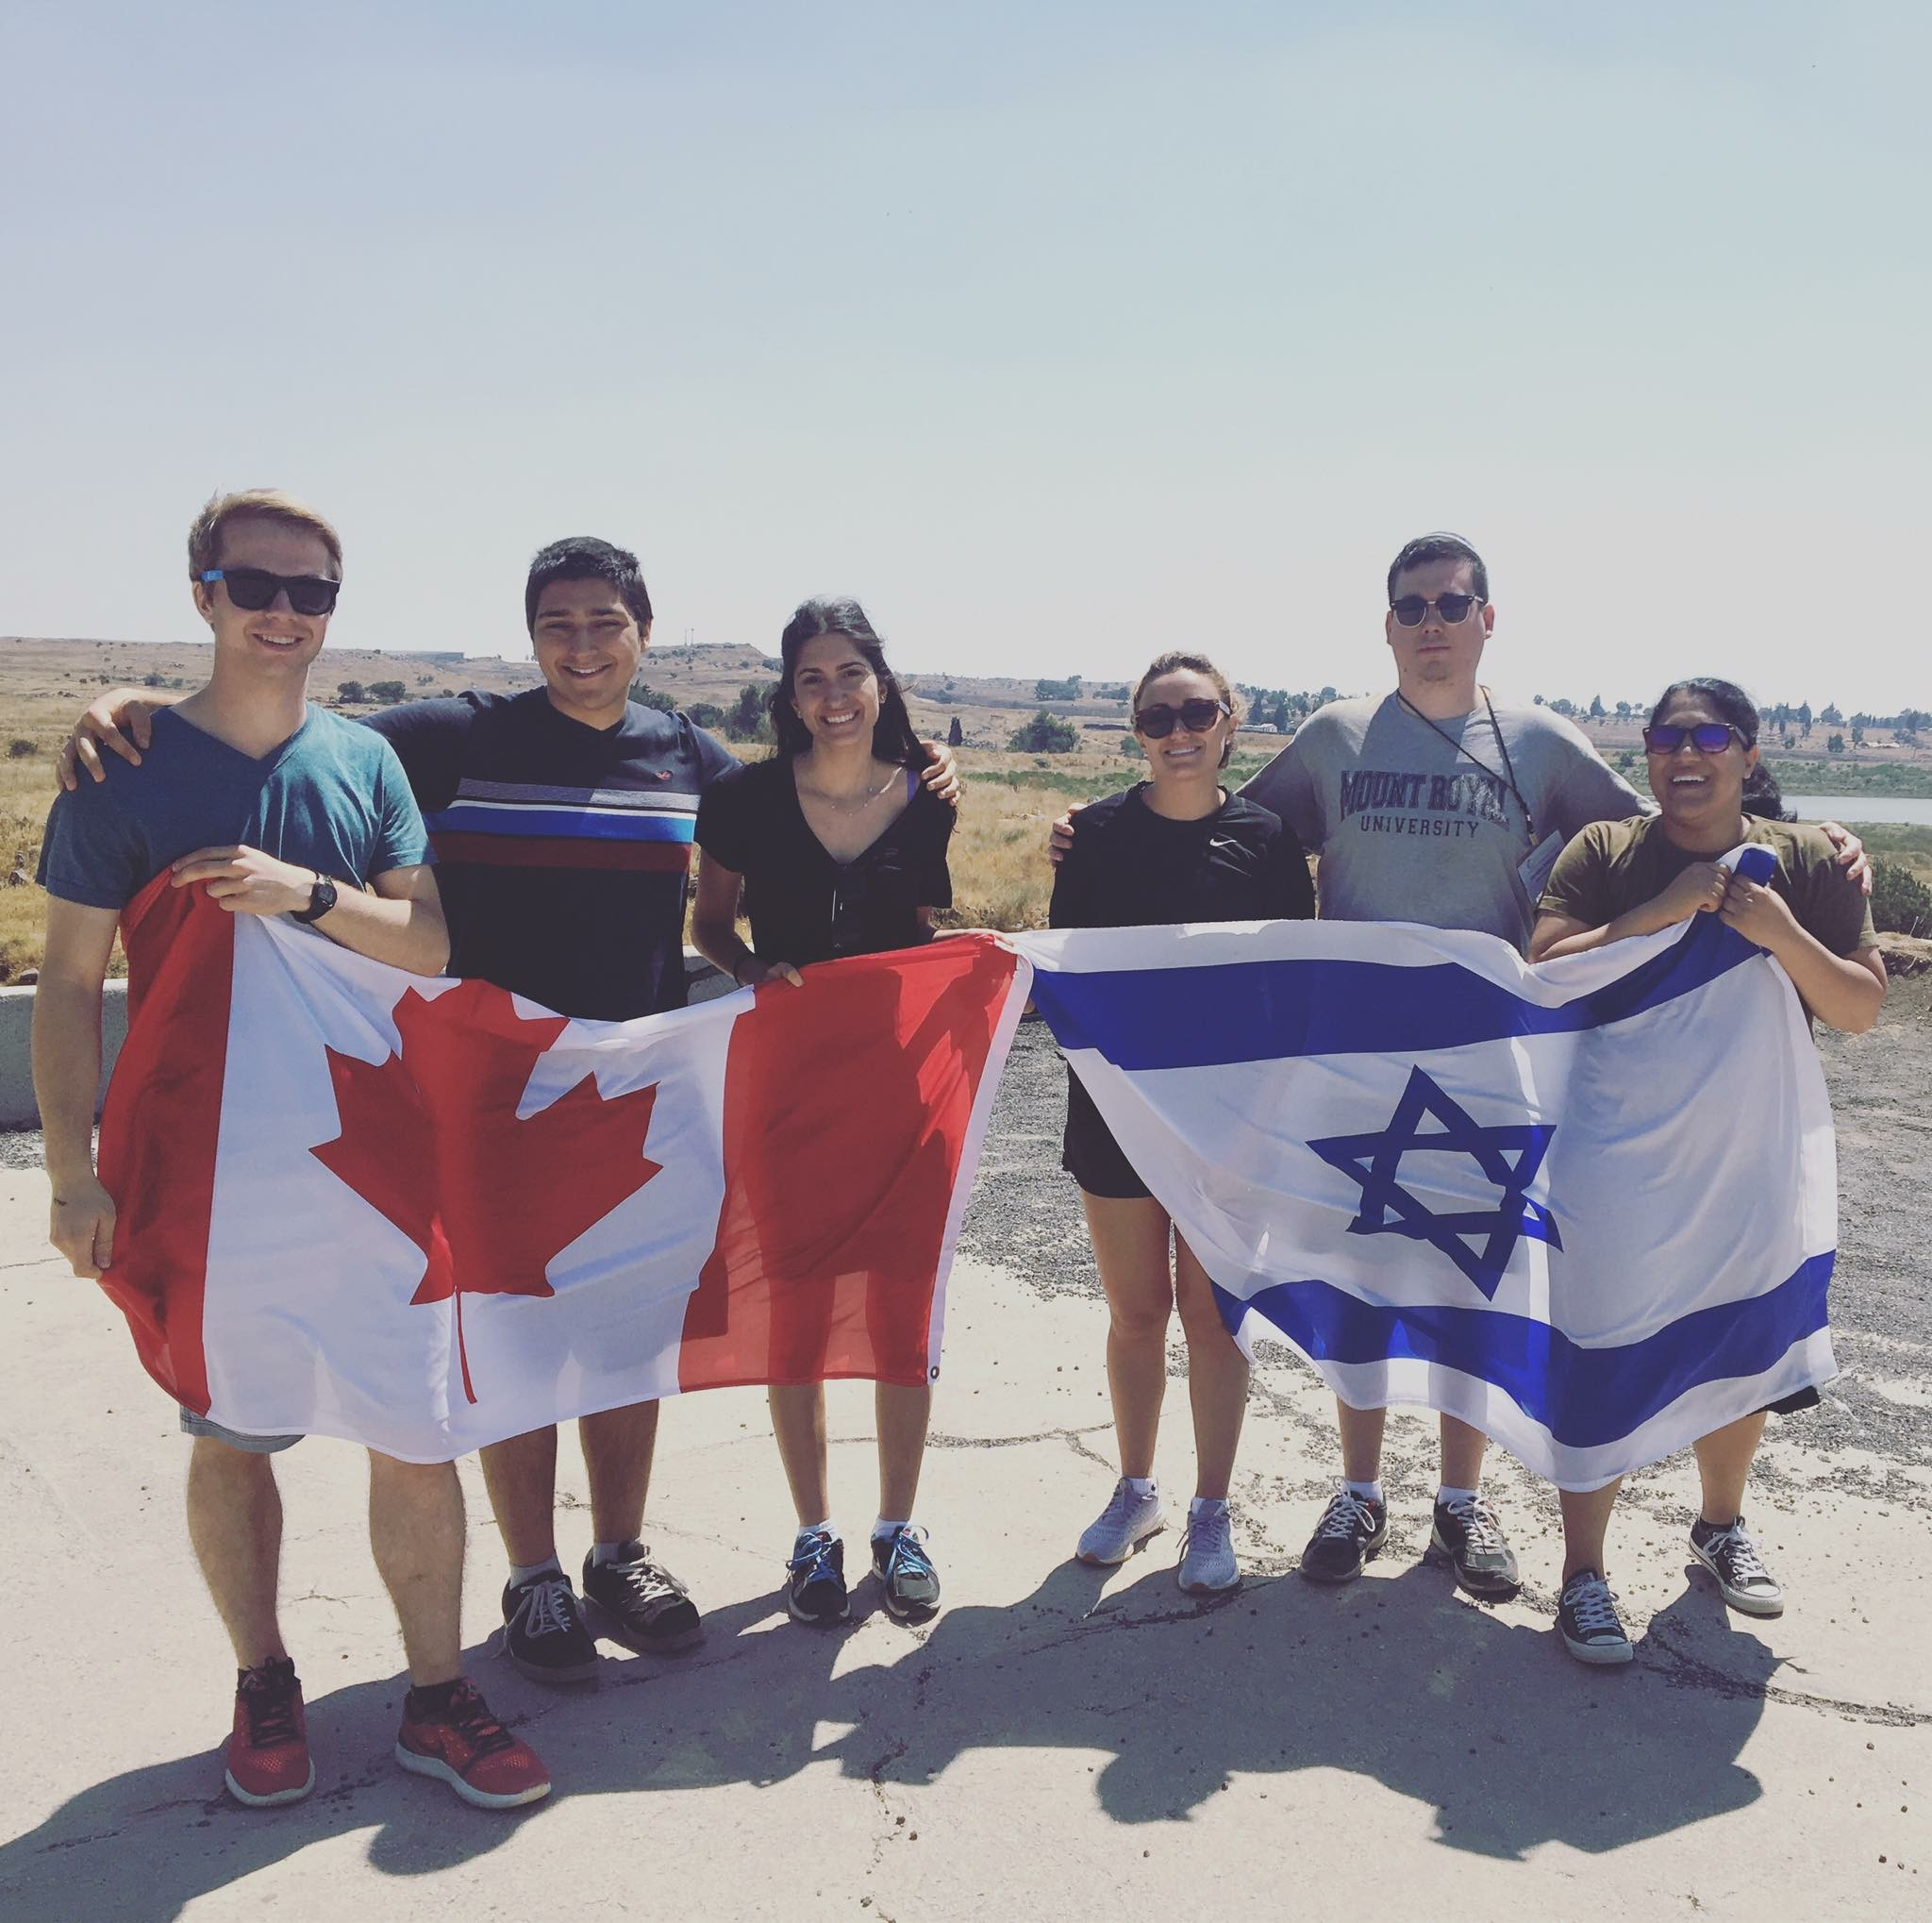 Hasbara Fellowships - Our aim is to equip leaders of pro-Israel groups on university campuses with the tools, training and strategic approach necessary to effectively impact their campuses for Israel.